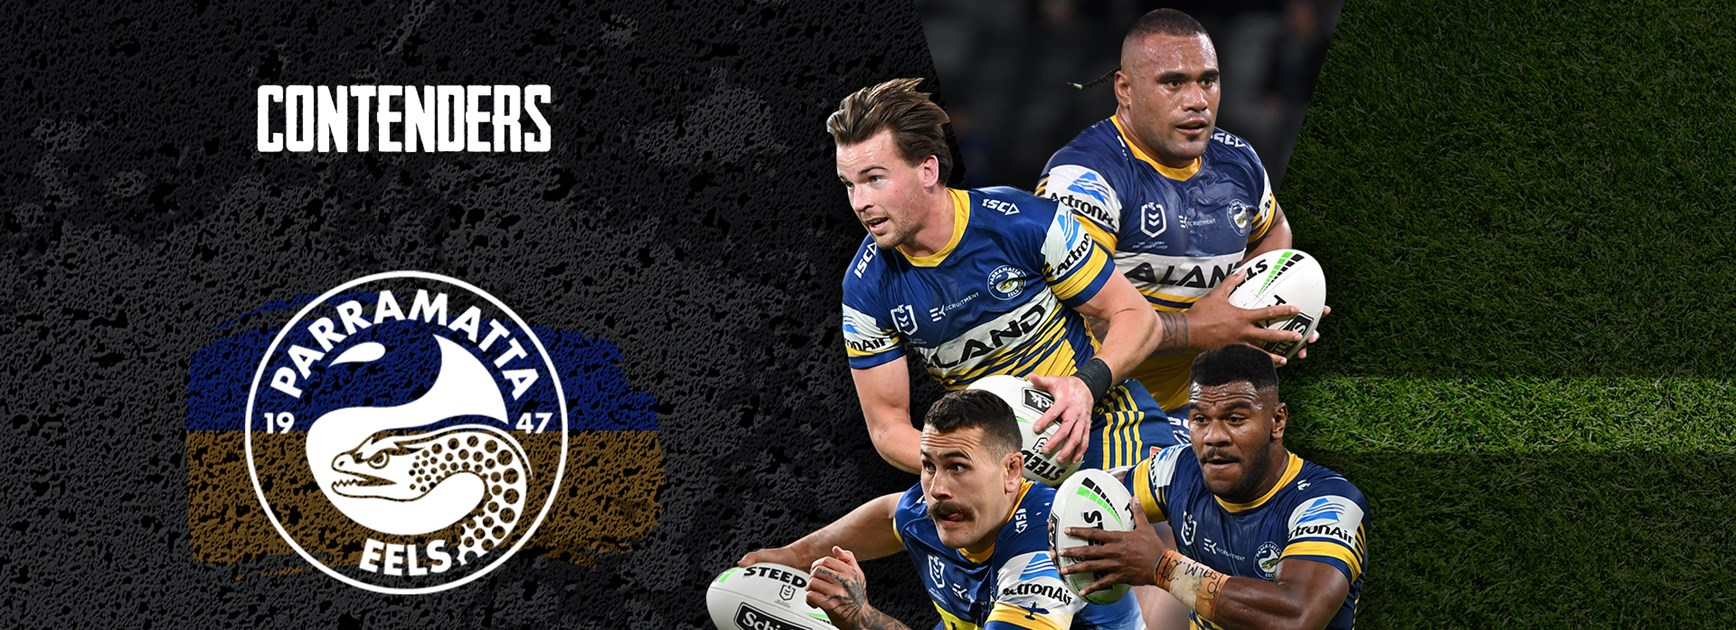 Eels contenders for RLPA Players' Champion 2020 named